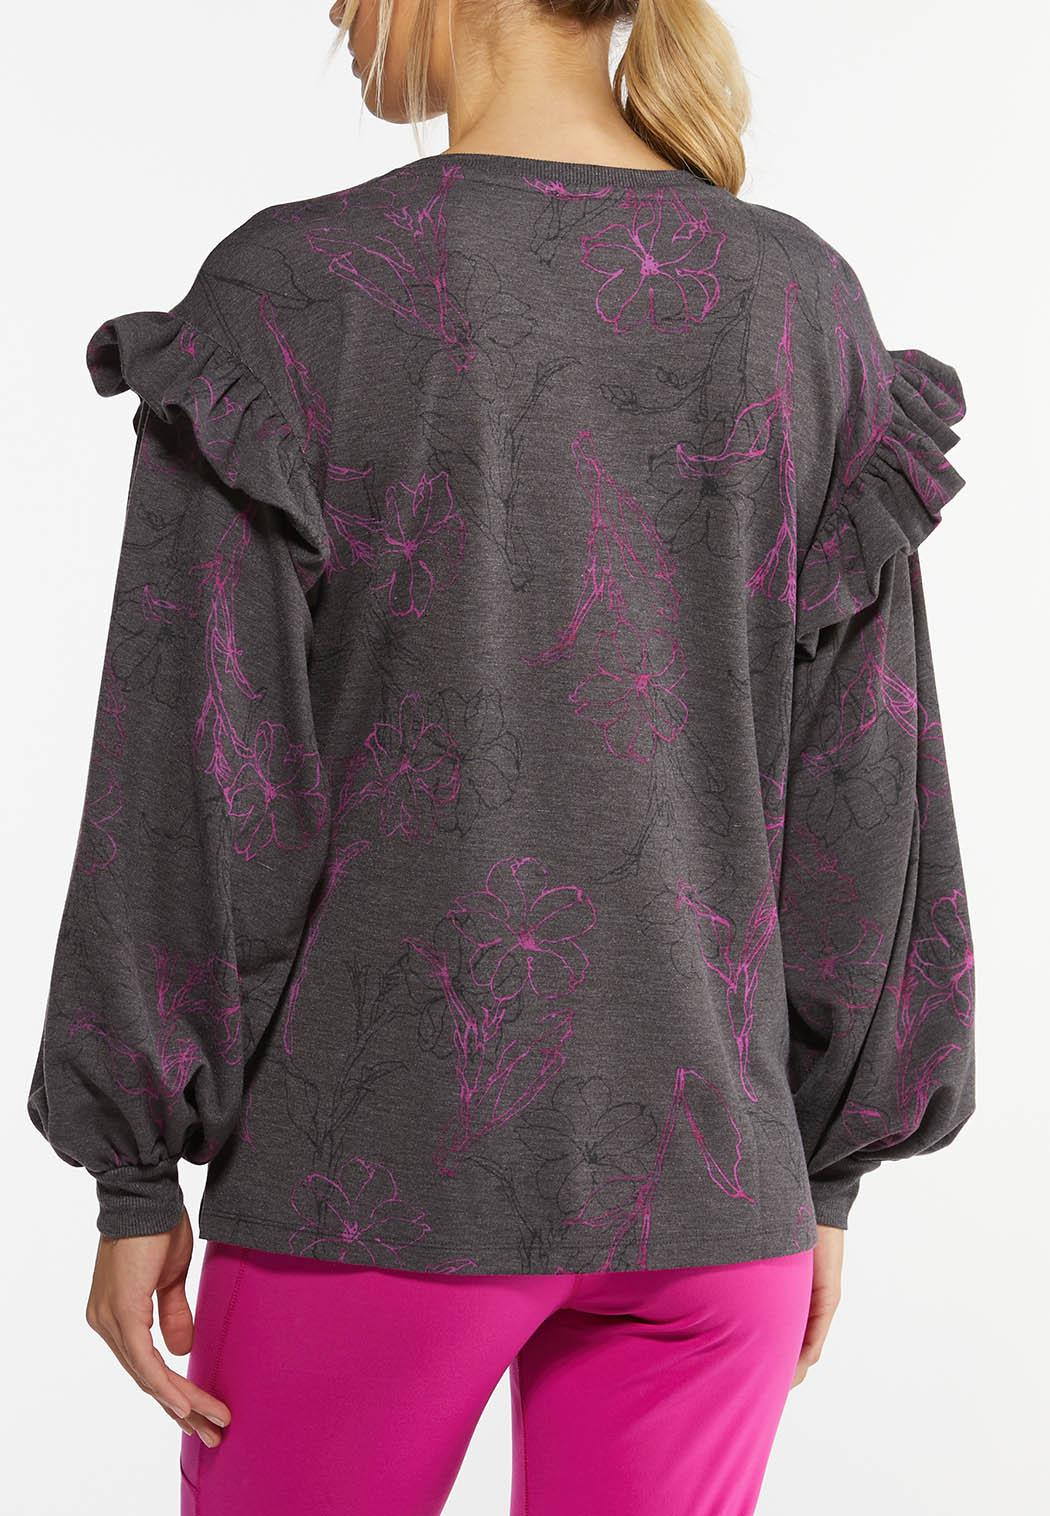 Floral Ruffled Trim Sweatshirt (Item #44462610)